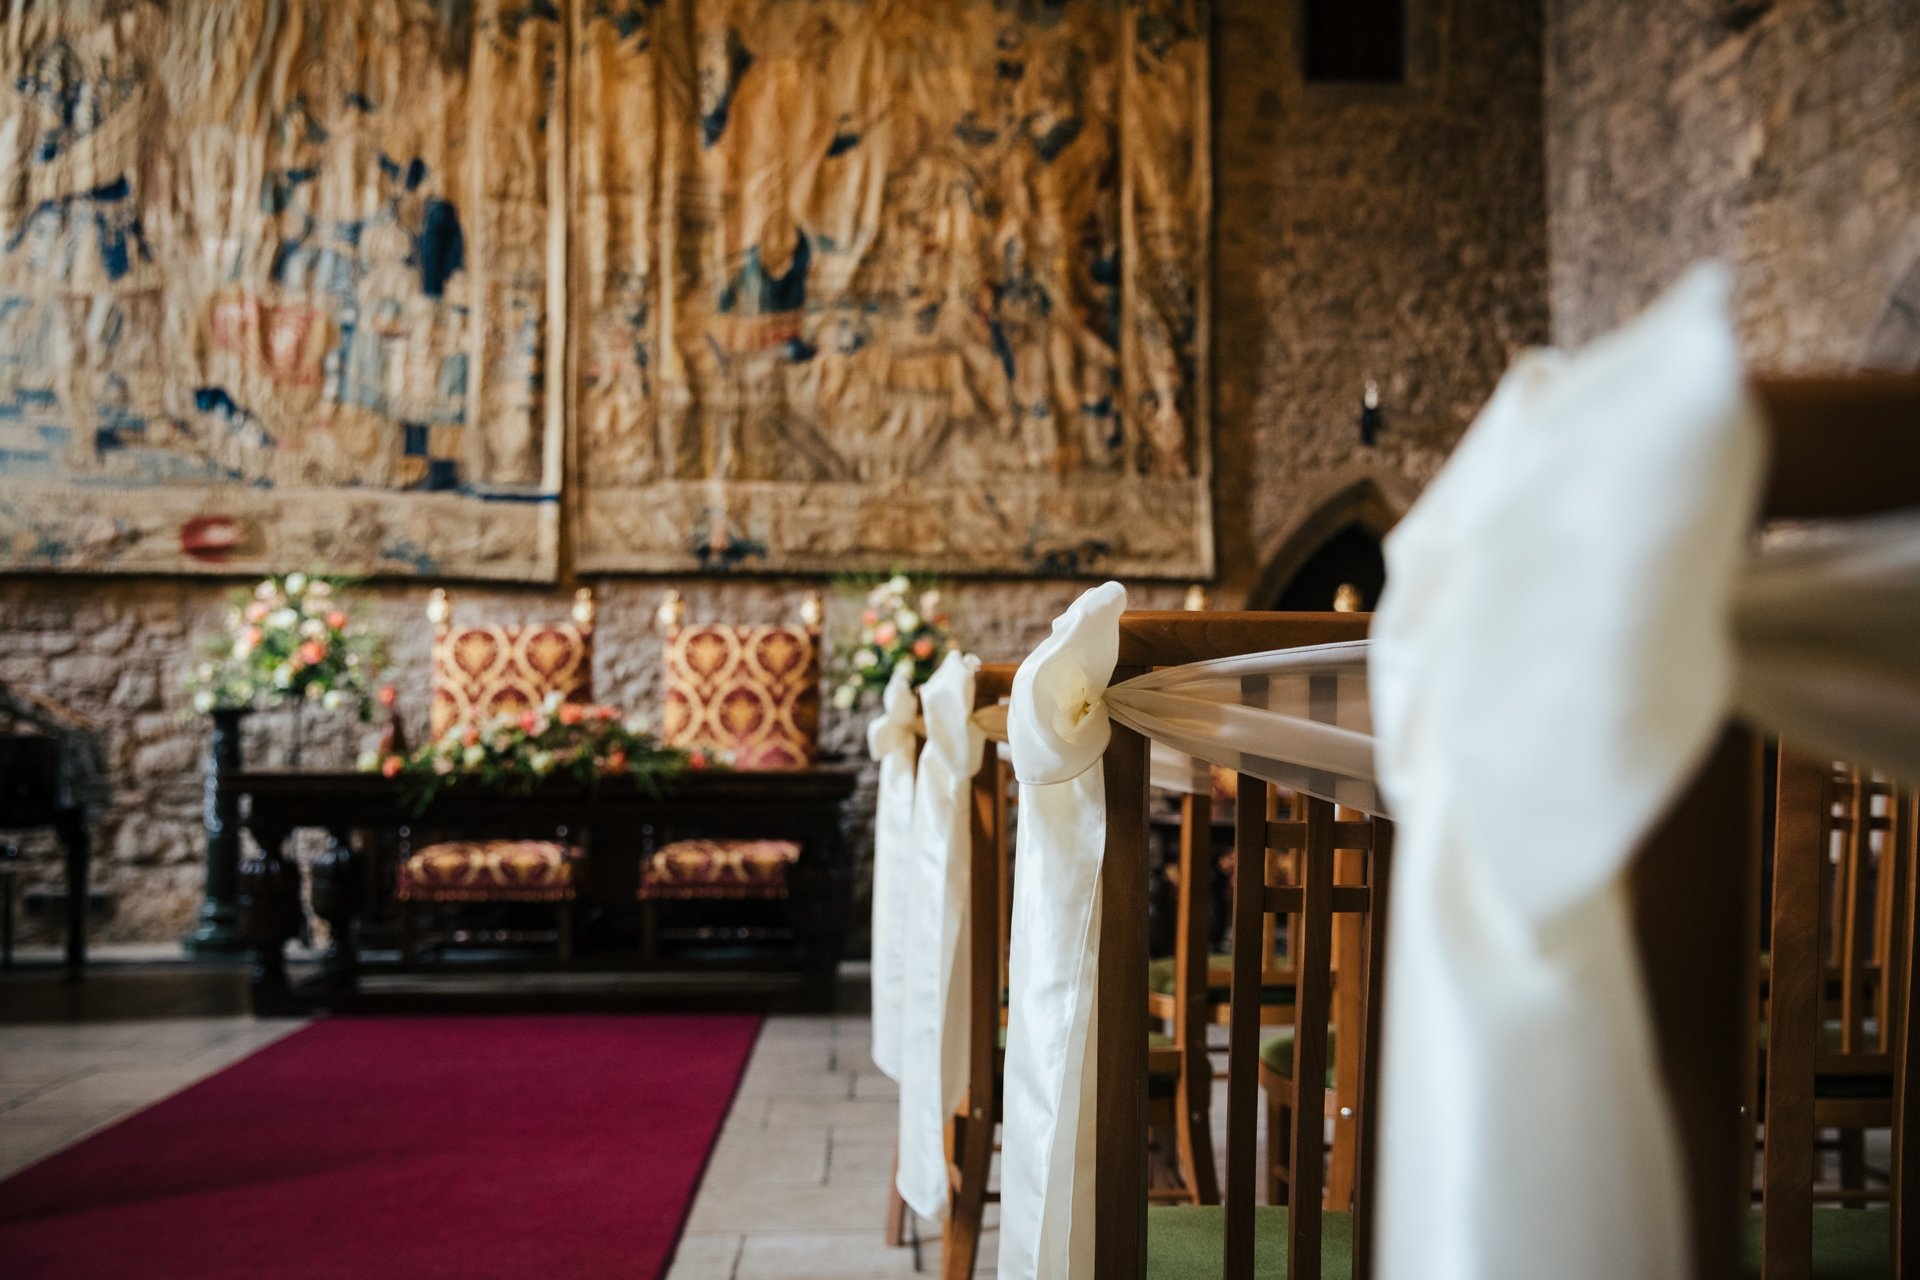 Cream sashes decorating the chairs in the medieval Castle of Allington, Kent Wedding Venue